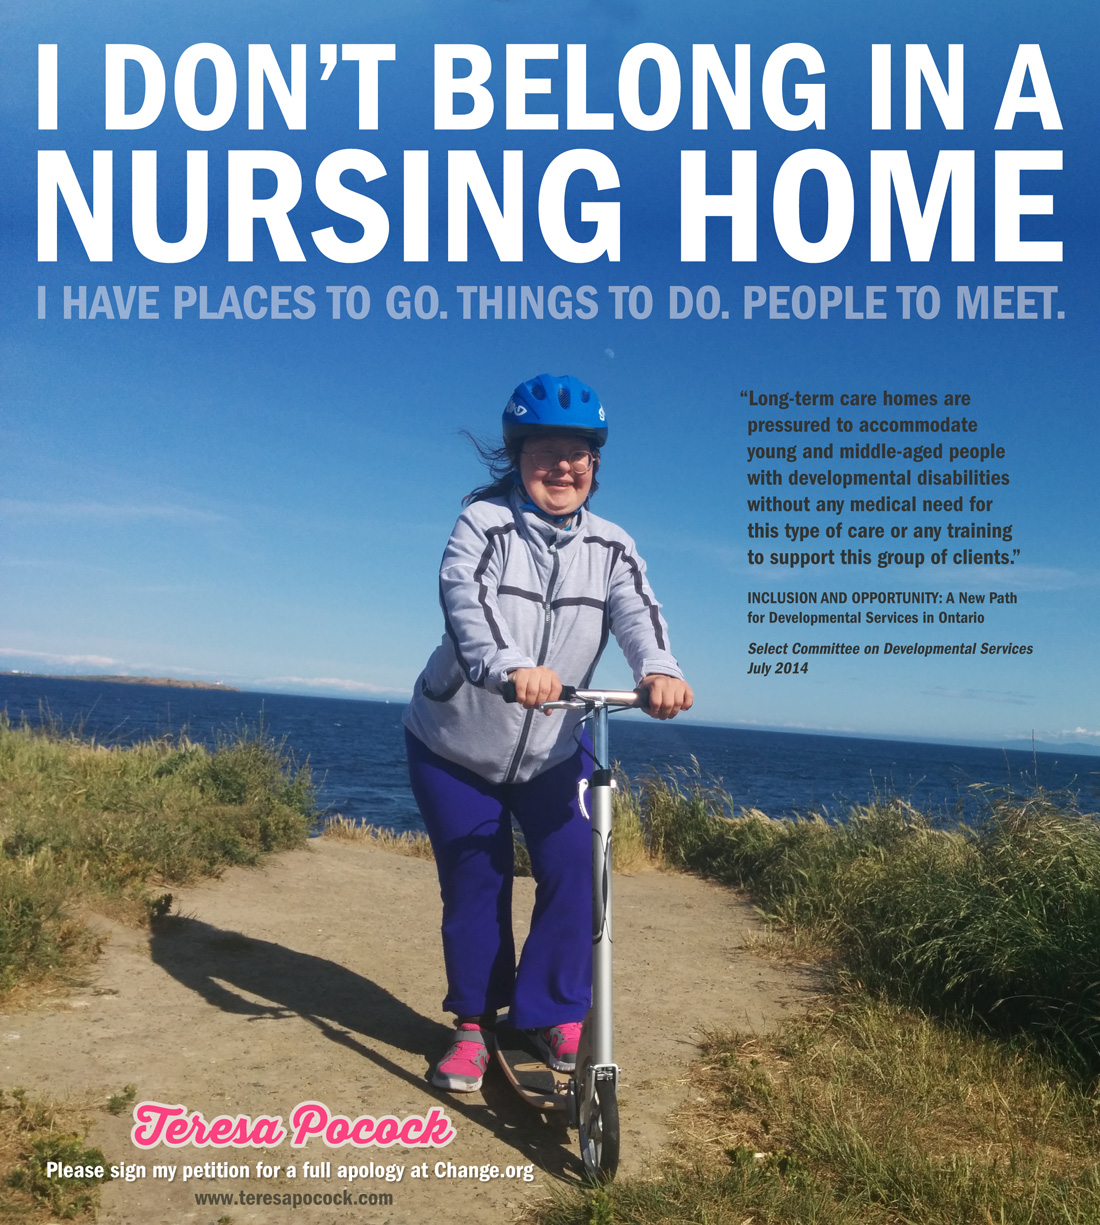 Teresa Pocock: I don't belong in a nursing home